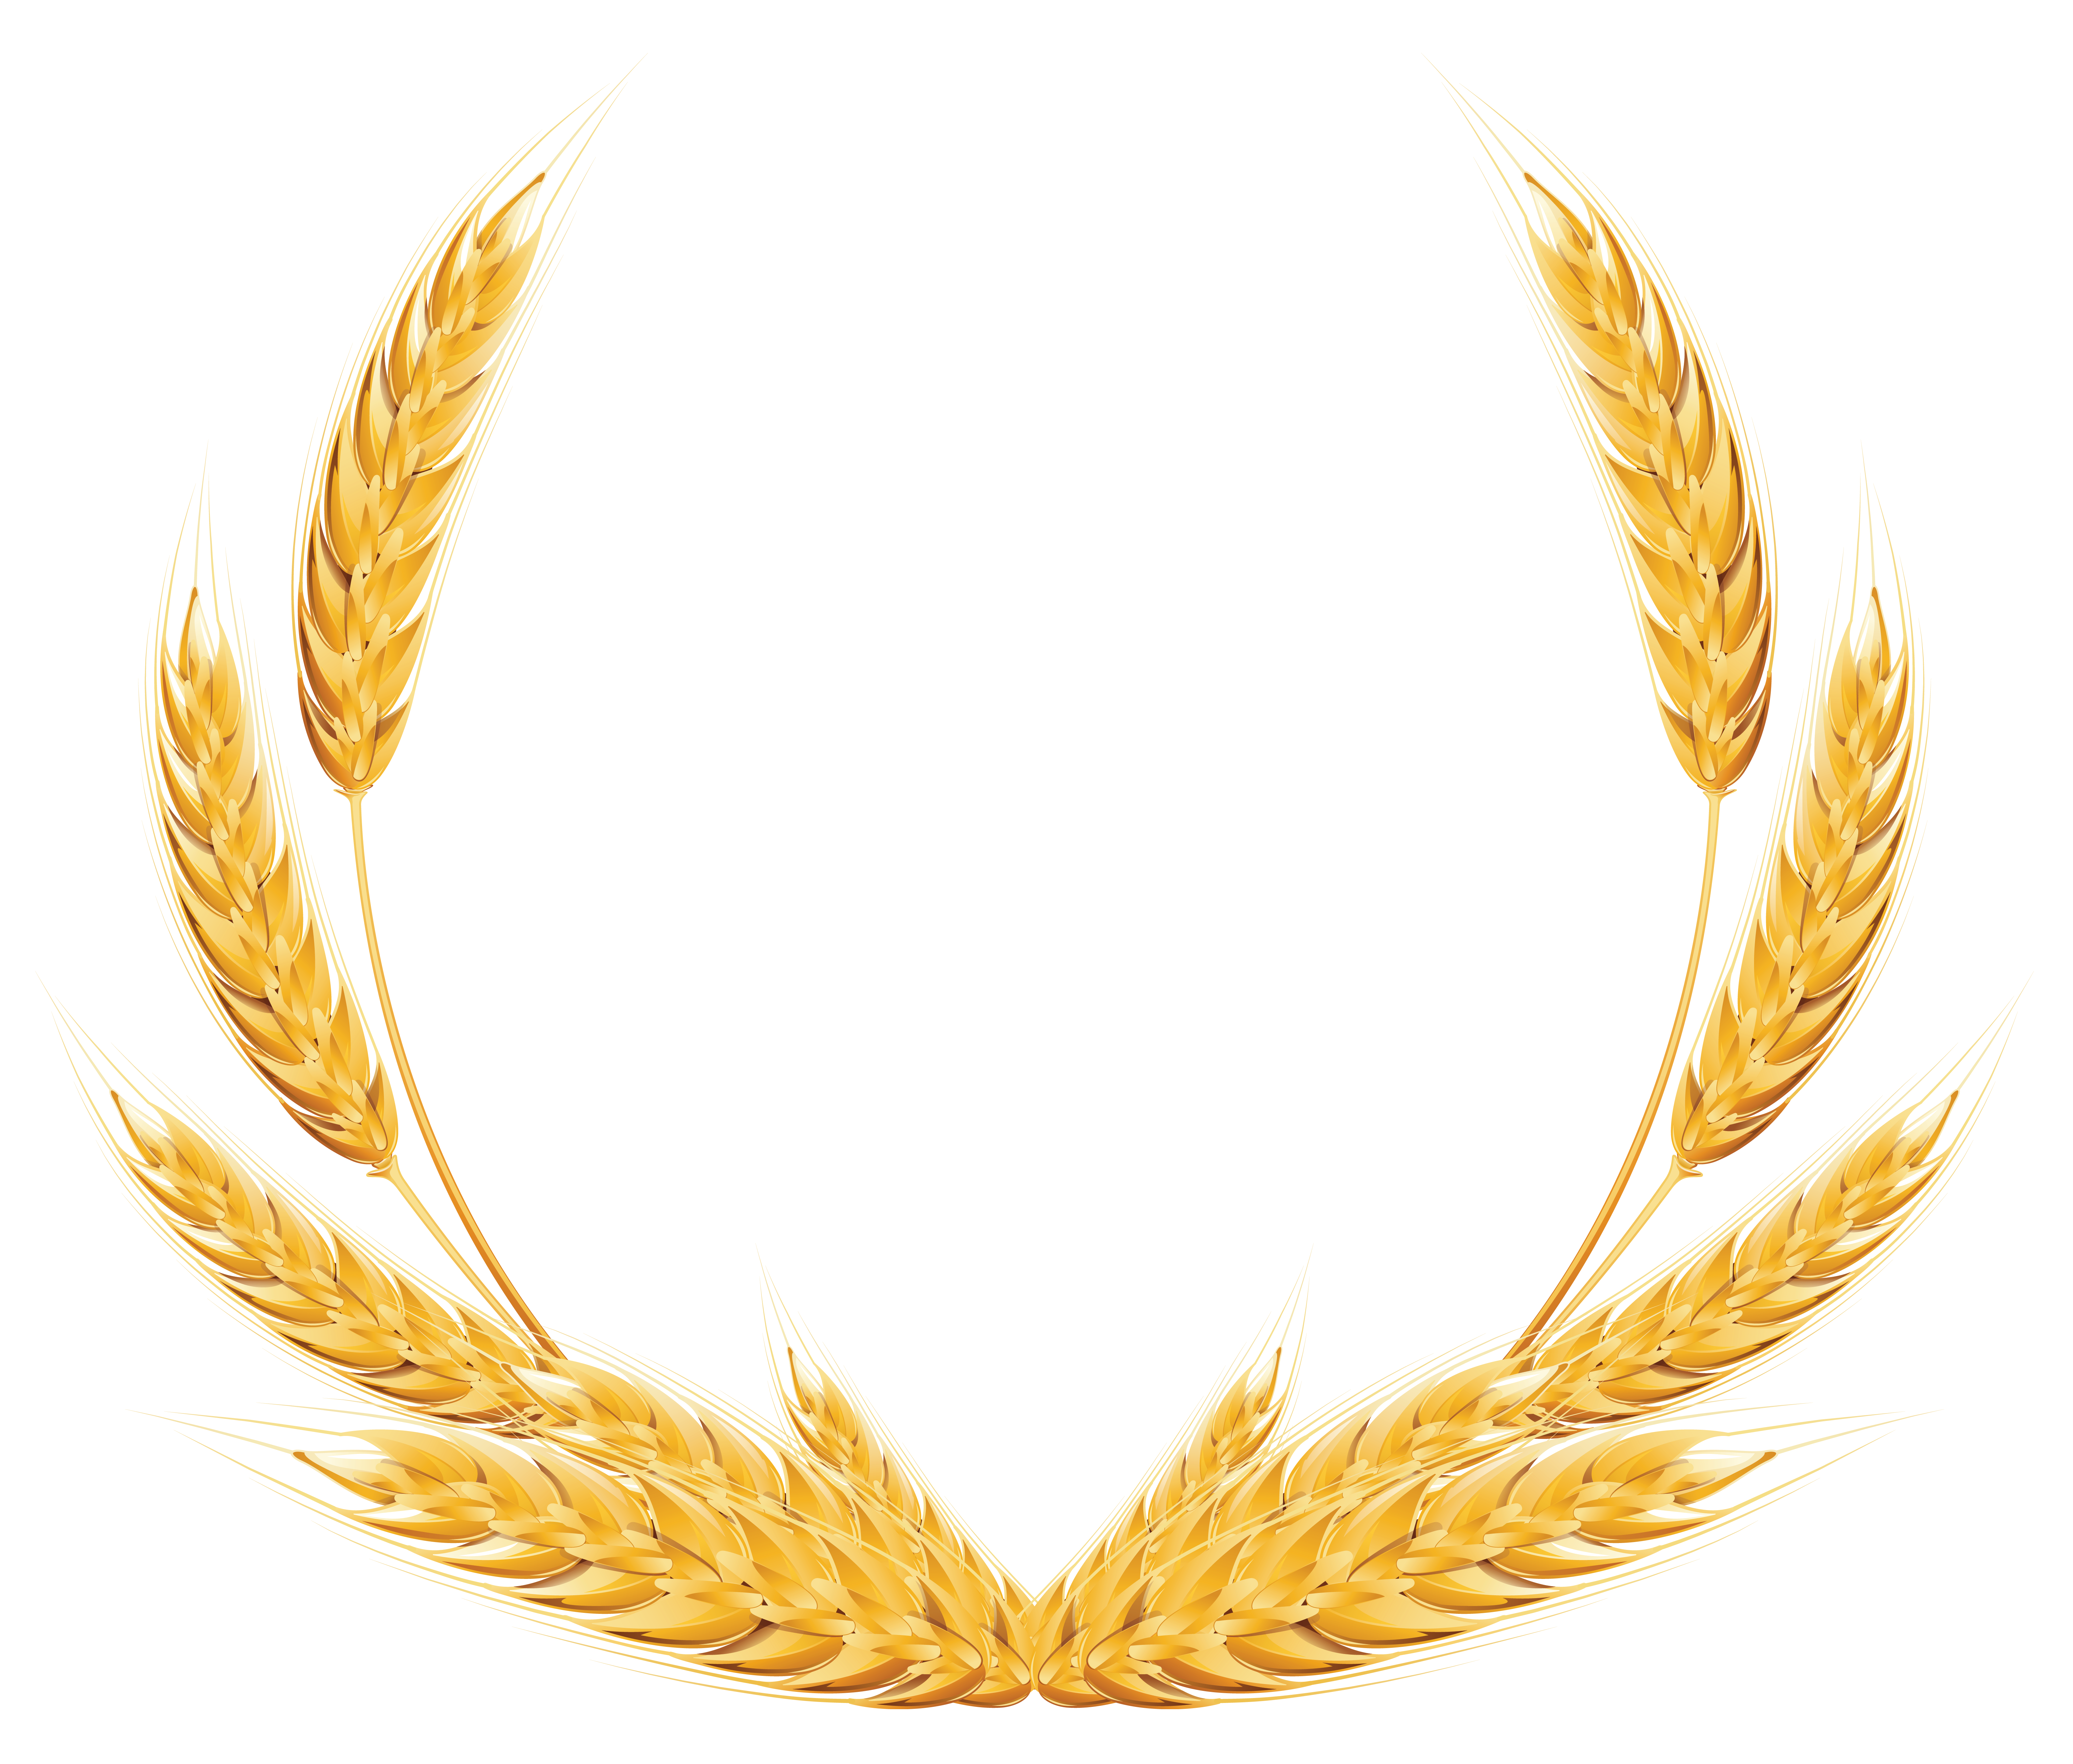 Wheat Png Image Wheat Decorations Wheat Drawing Clipart Images